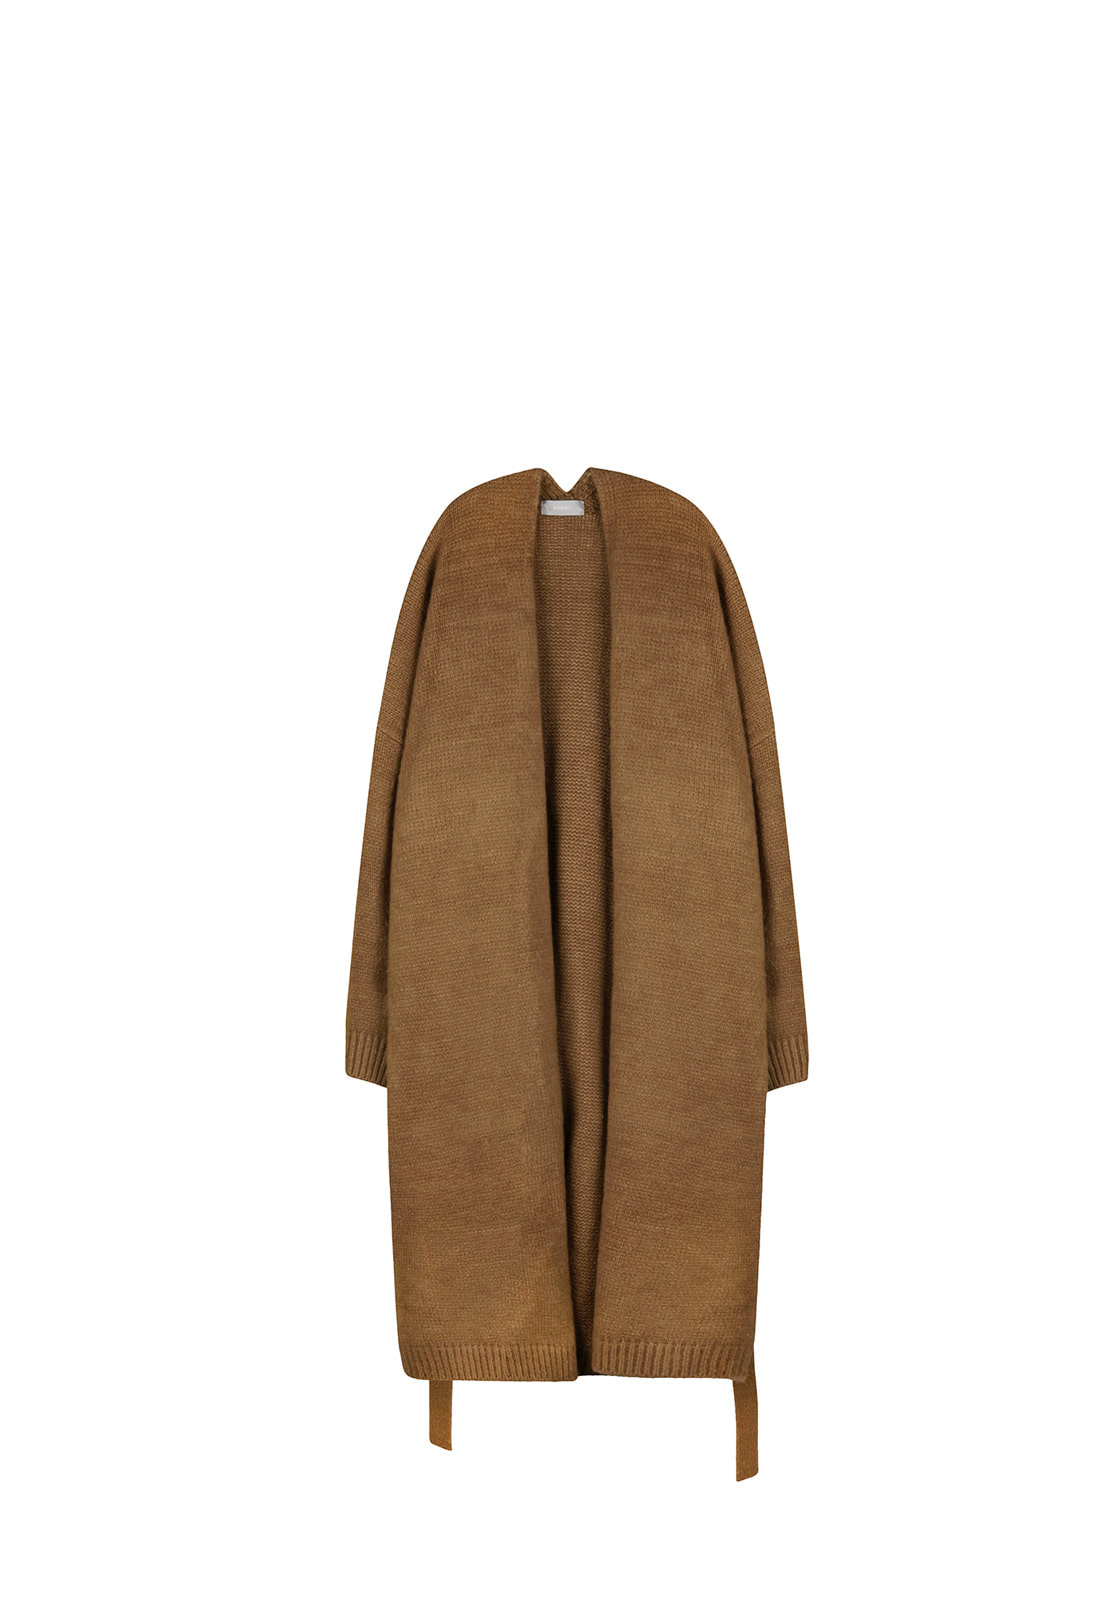 V517 OVERSIZE ROBE LONG CARDIGANBROWN